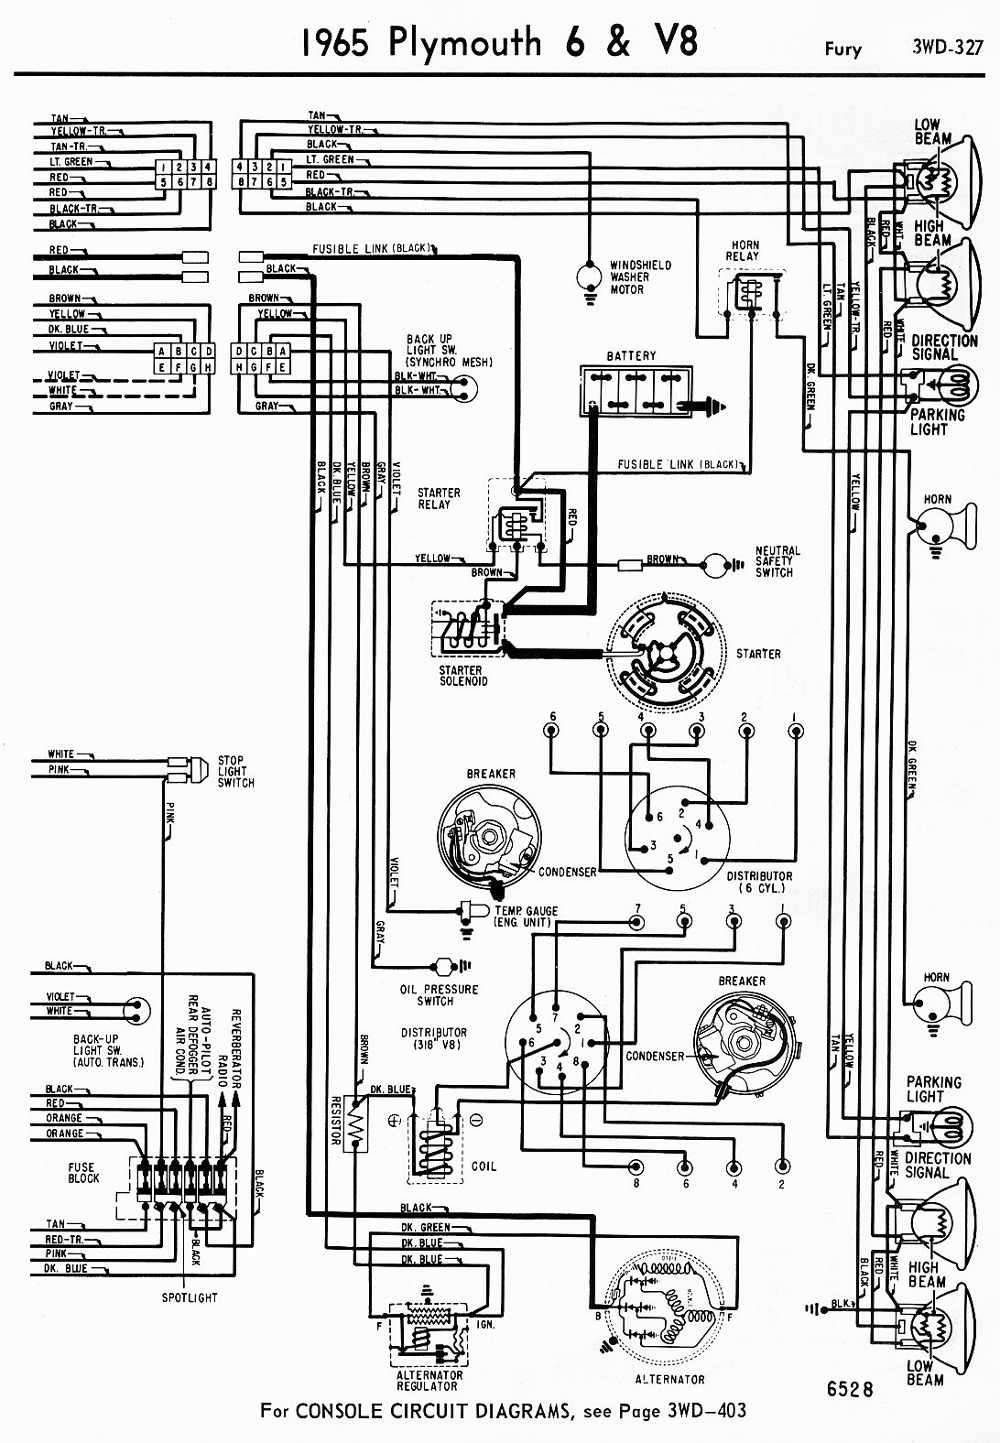 1970 plymouth fury wiring diagram